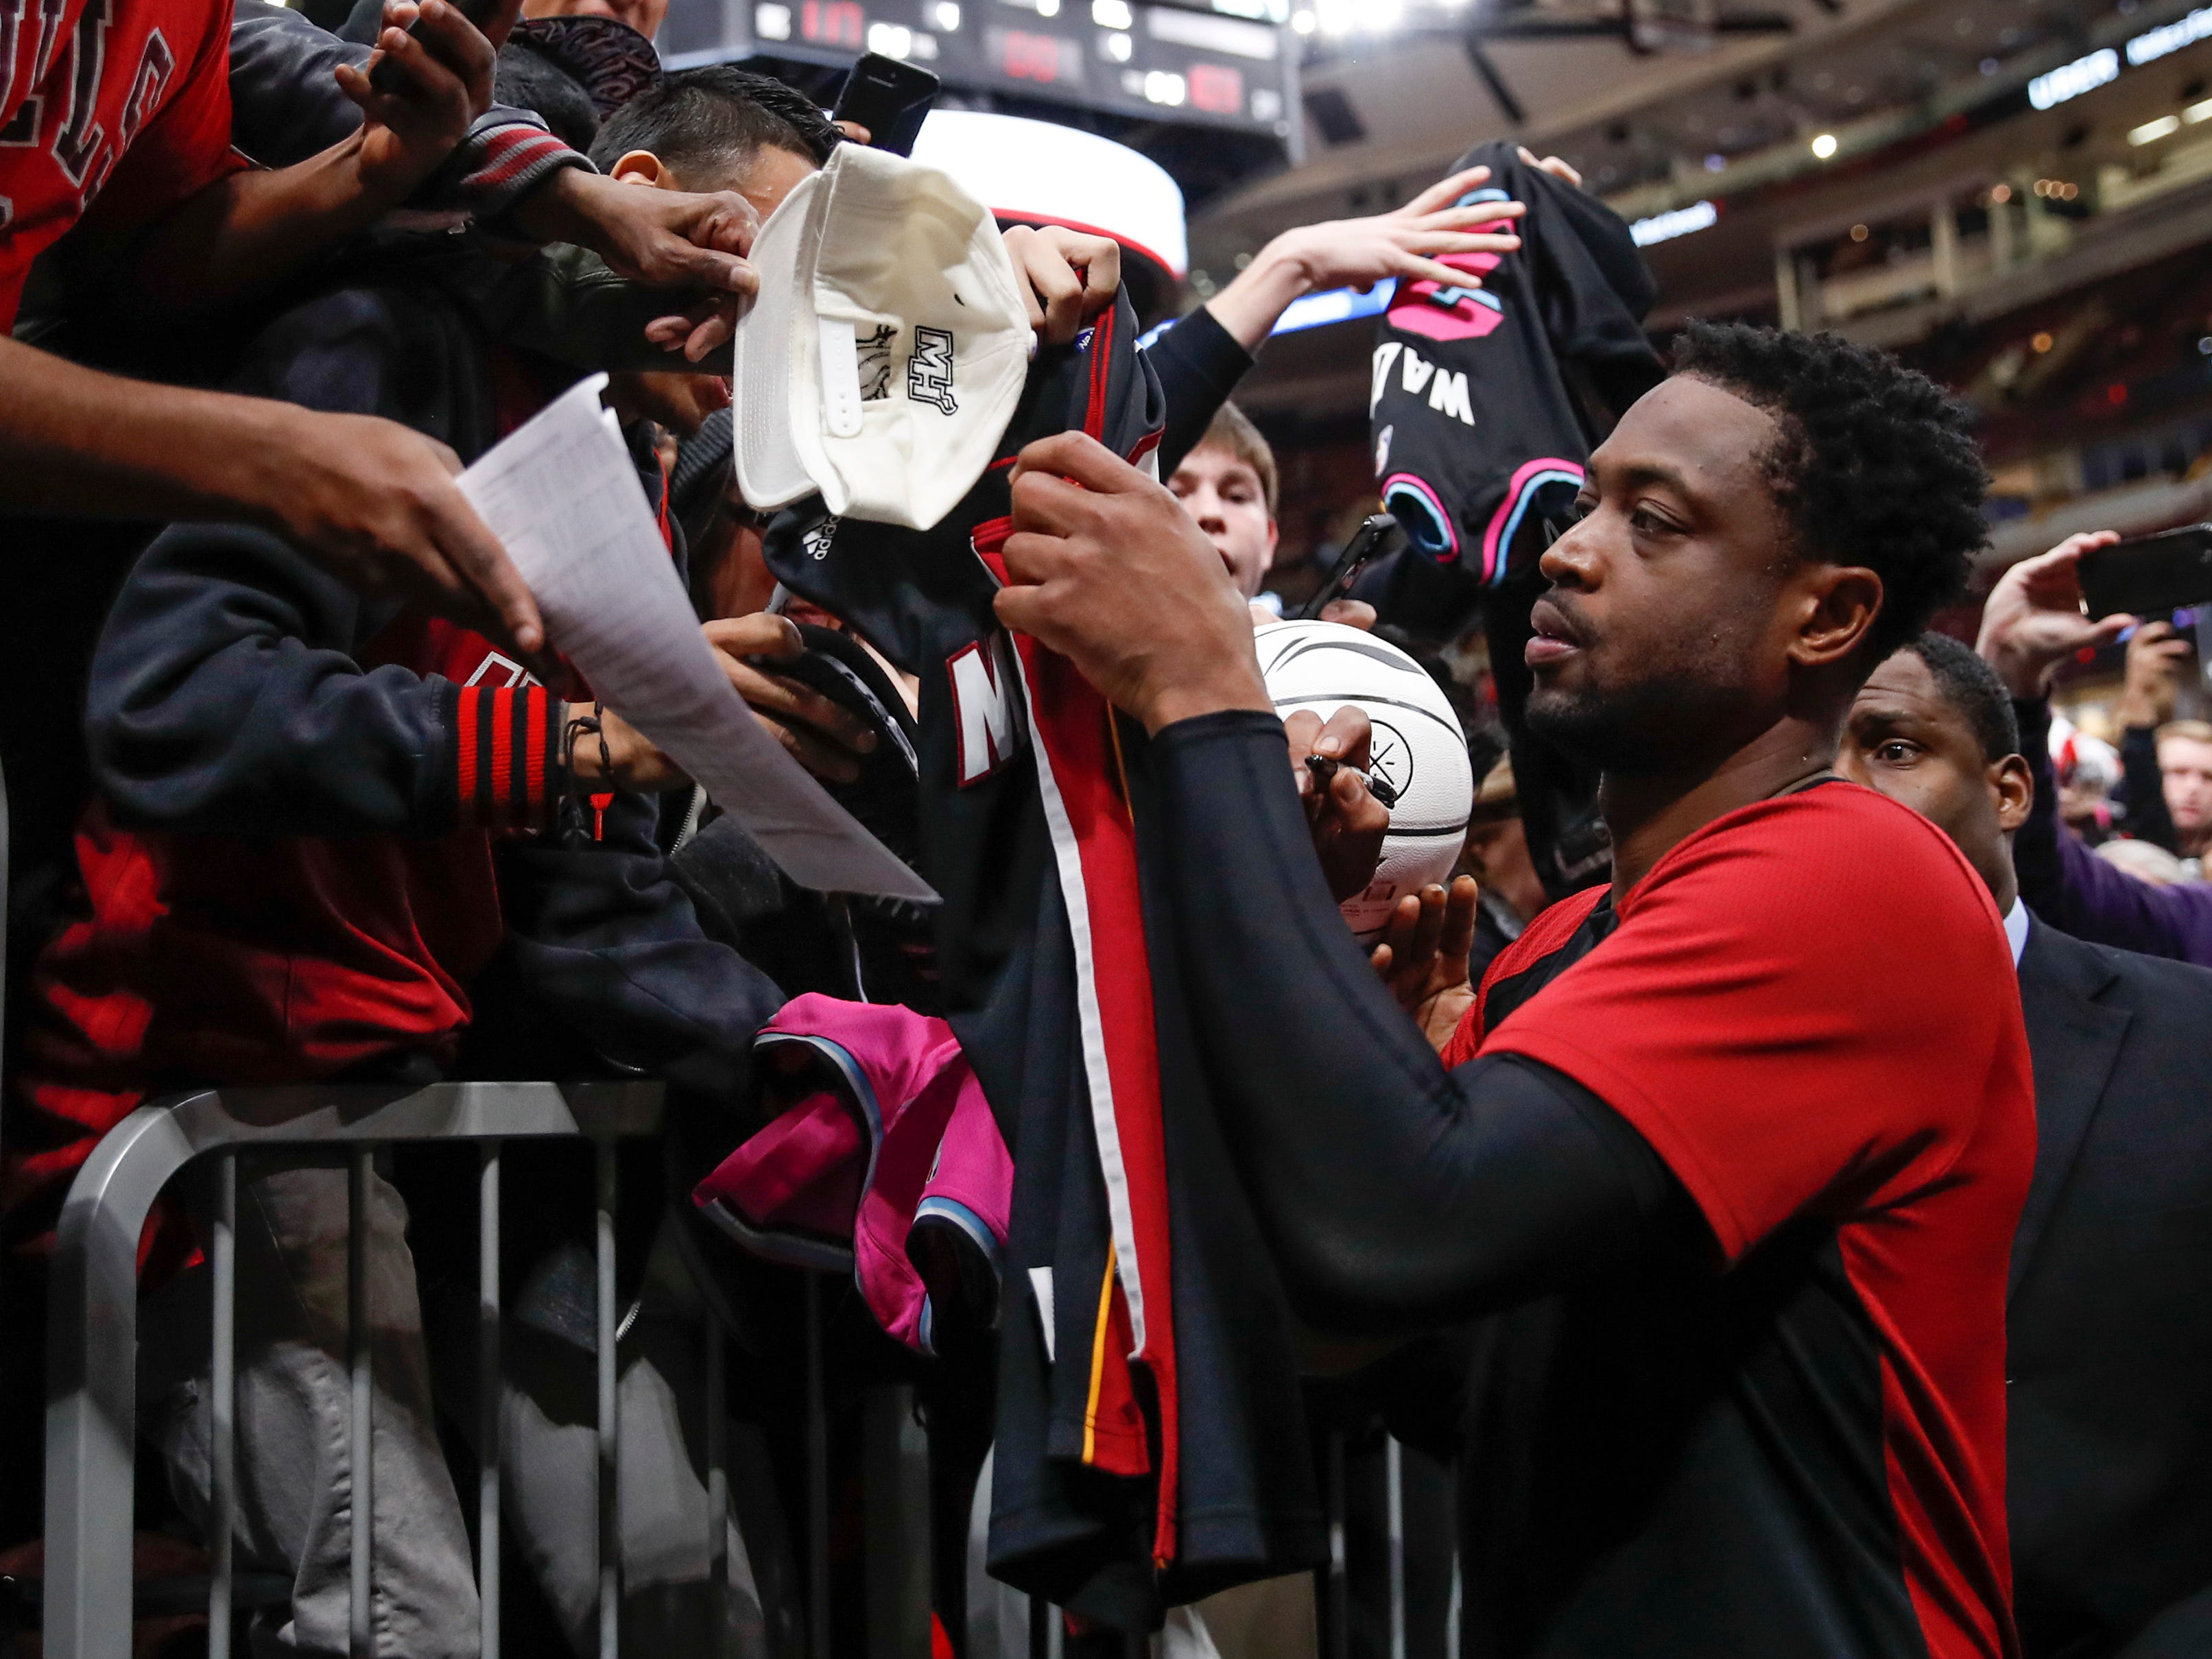 Jan. 19: Retiring Heat guard Dwyane Wade signs autographs after his final game in his hometown of Chicago.